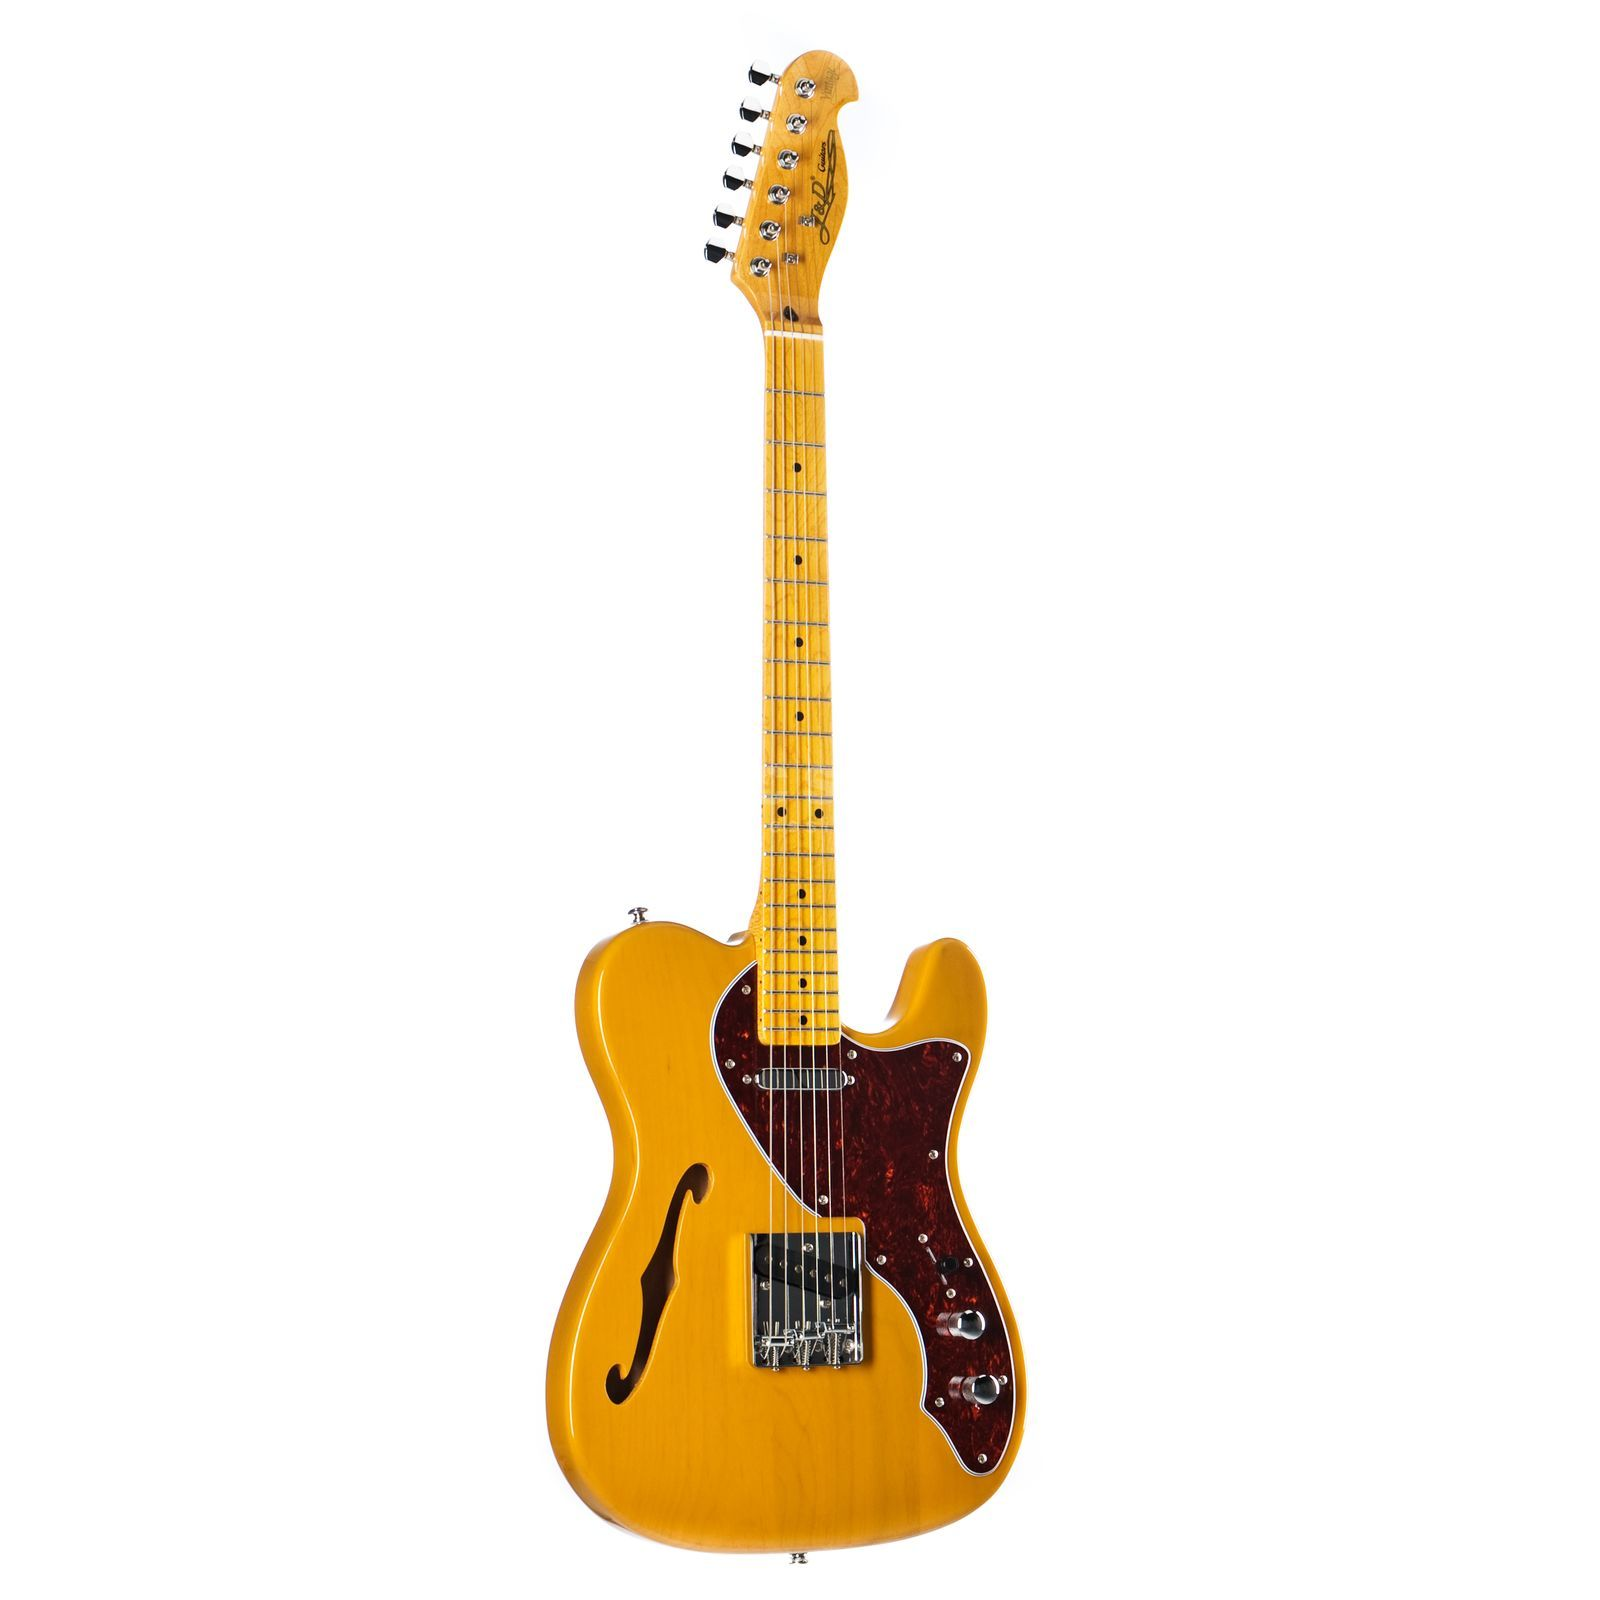 Jack & Danny TL Thinline Butterscotch Blonde Produktbild